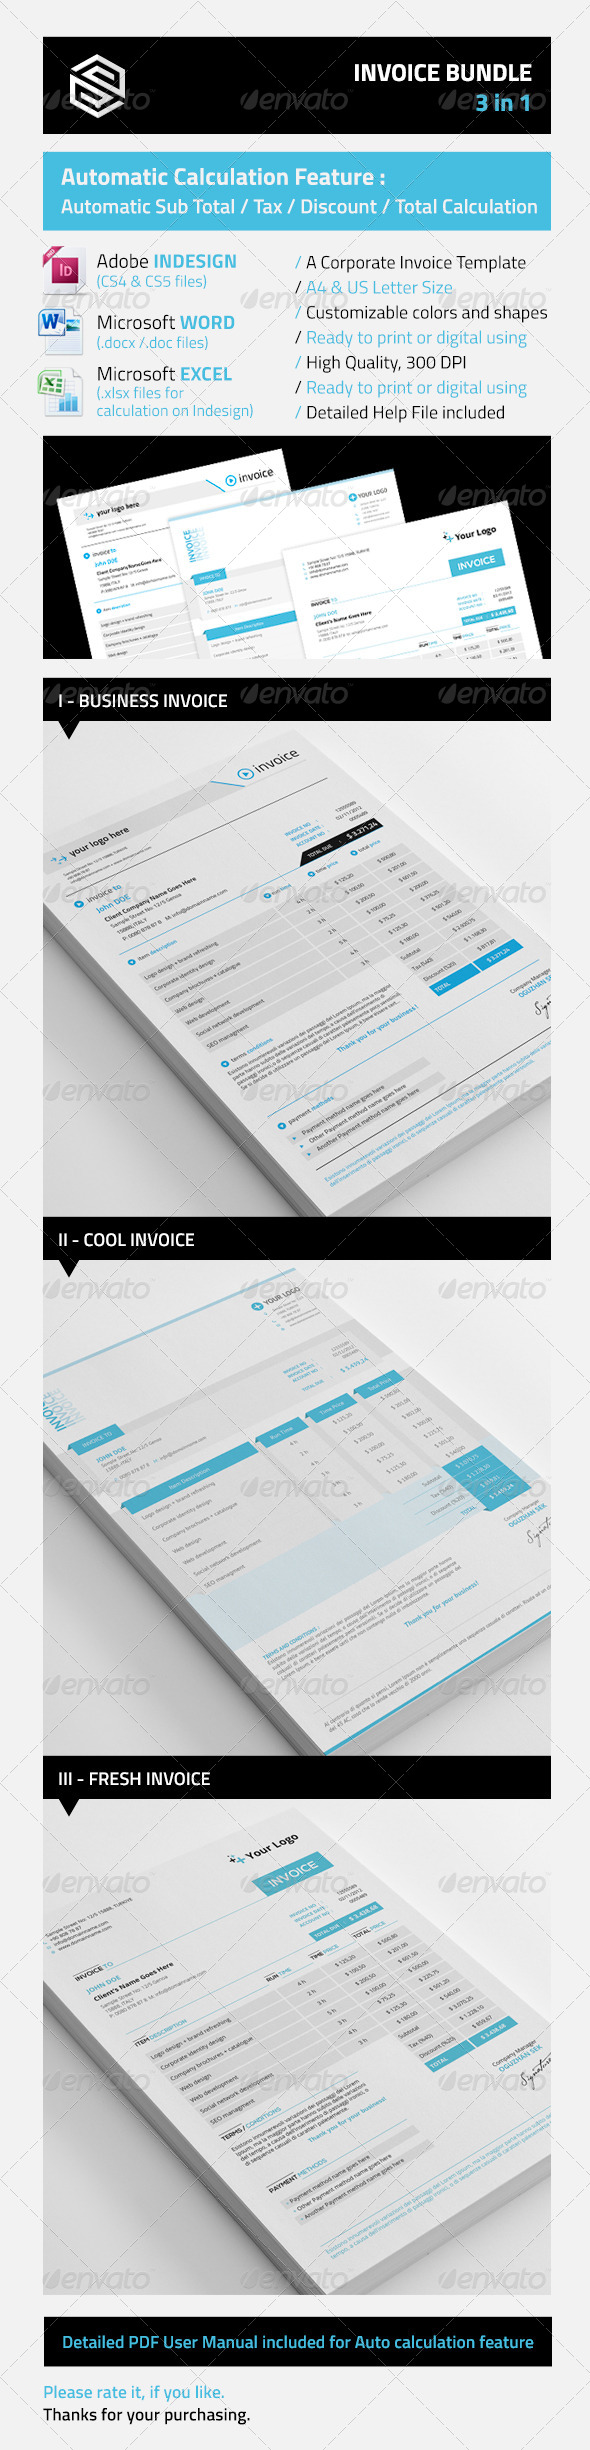 Xero Invoices Word Stock Vector  Design Template Atm Receipt Pdf with Hsbc Invoice Finance Login Invoice Bundle  What Is Dealer Invoice Price Mean